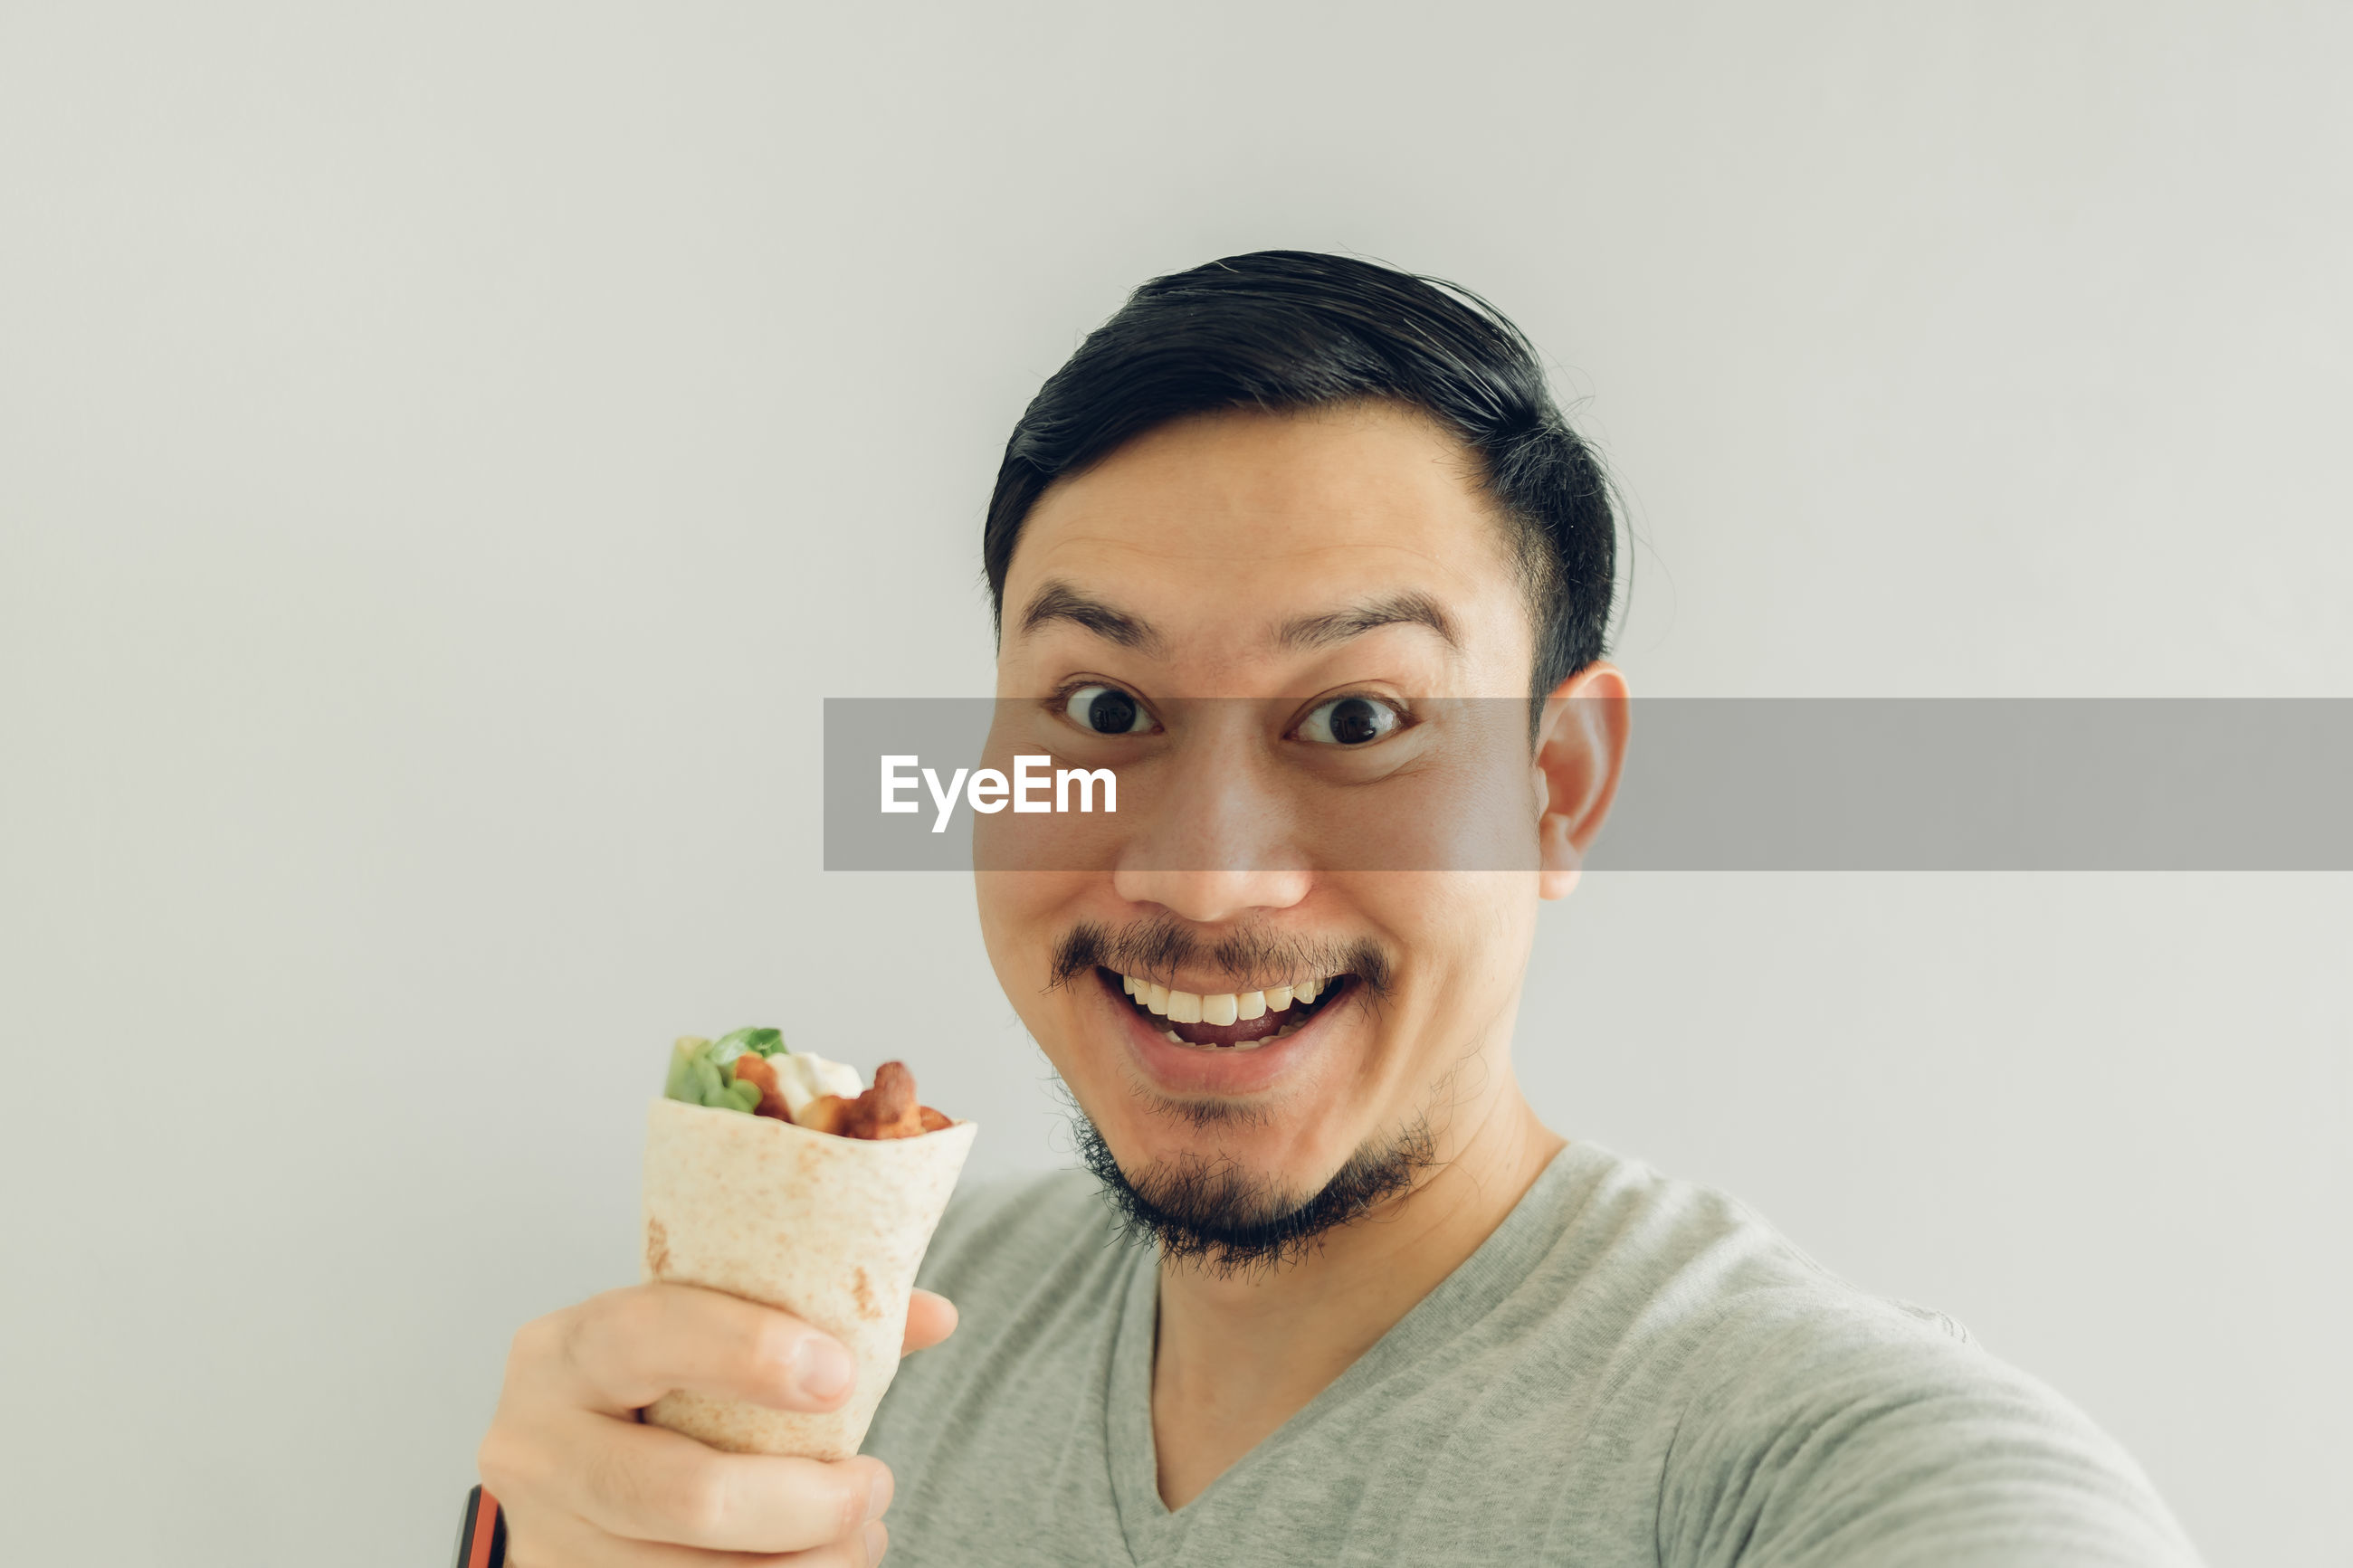 Portrait of man holding food against white background